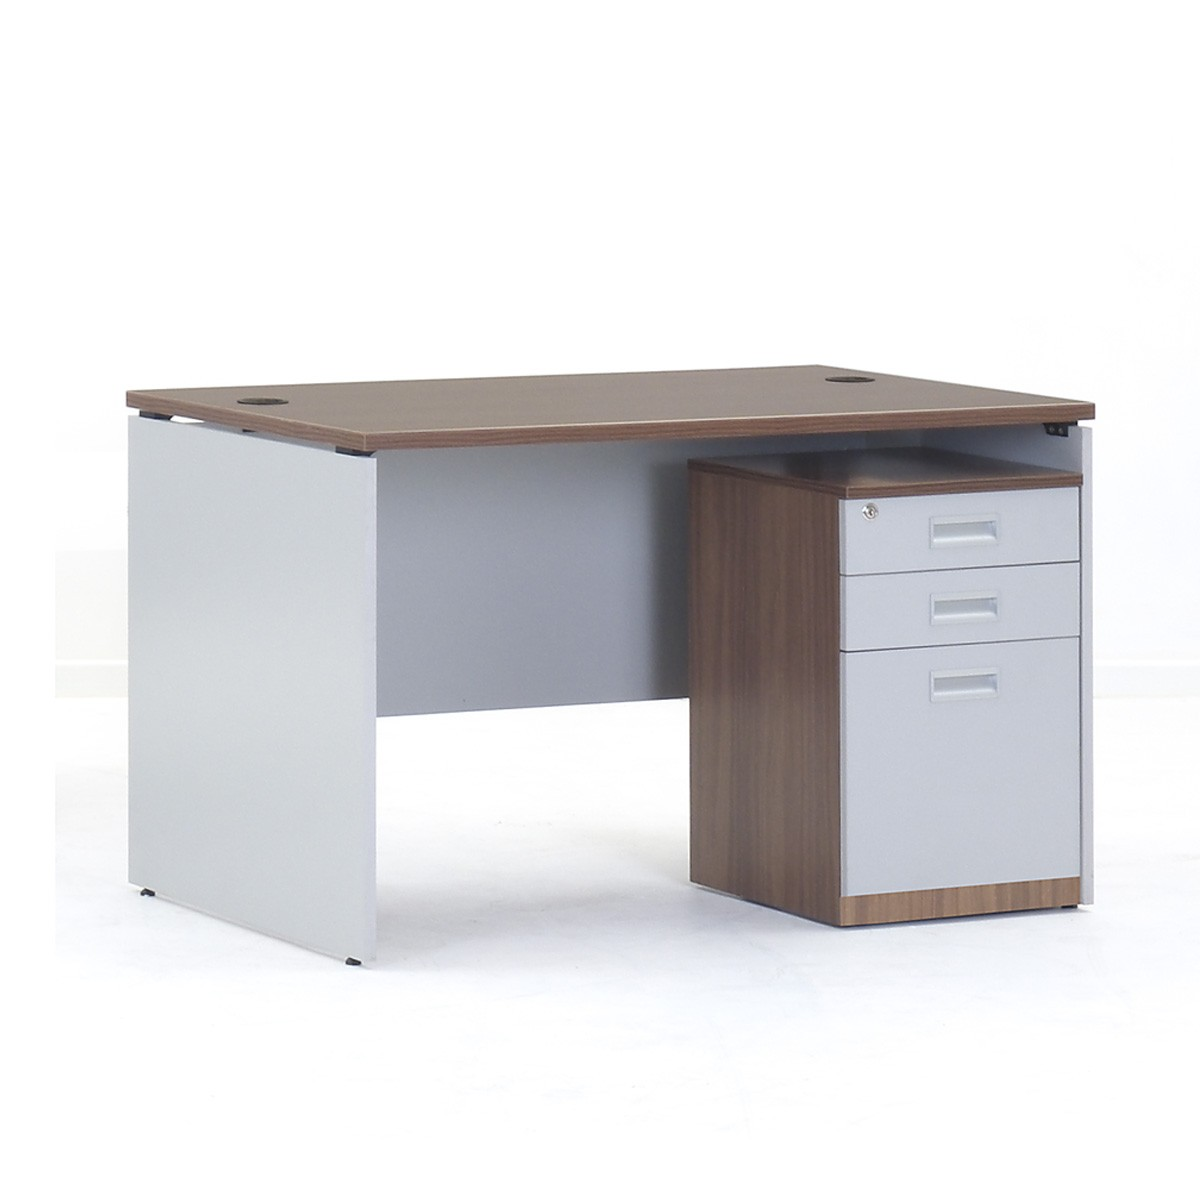 Furniture To Buy Online: Buy Versaline Table With Pedestal Cabin Online At